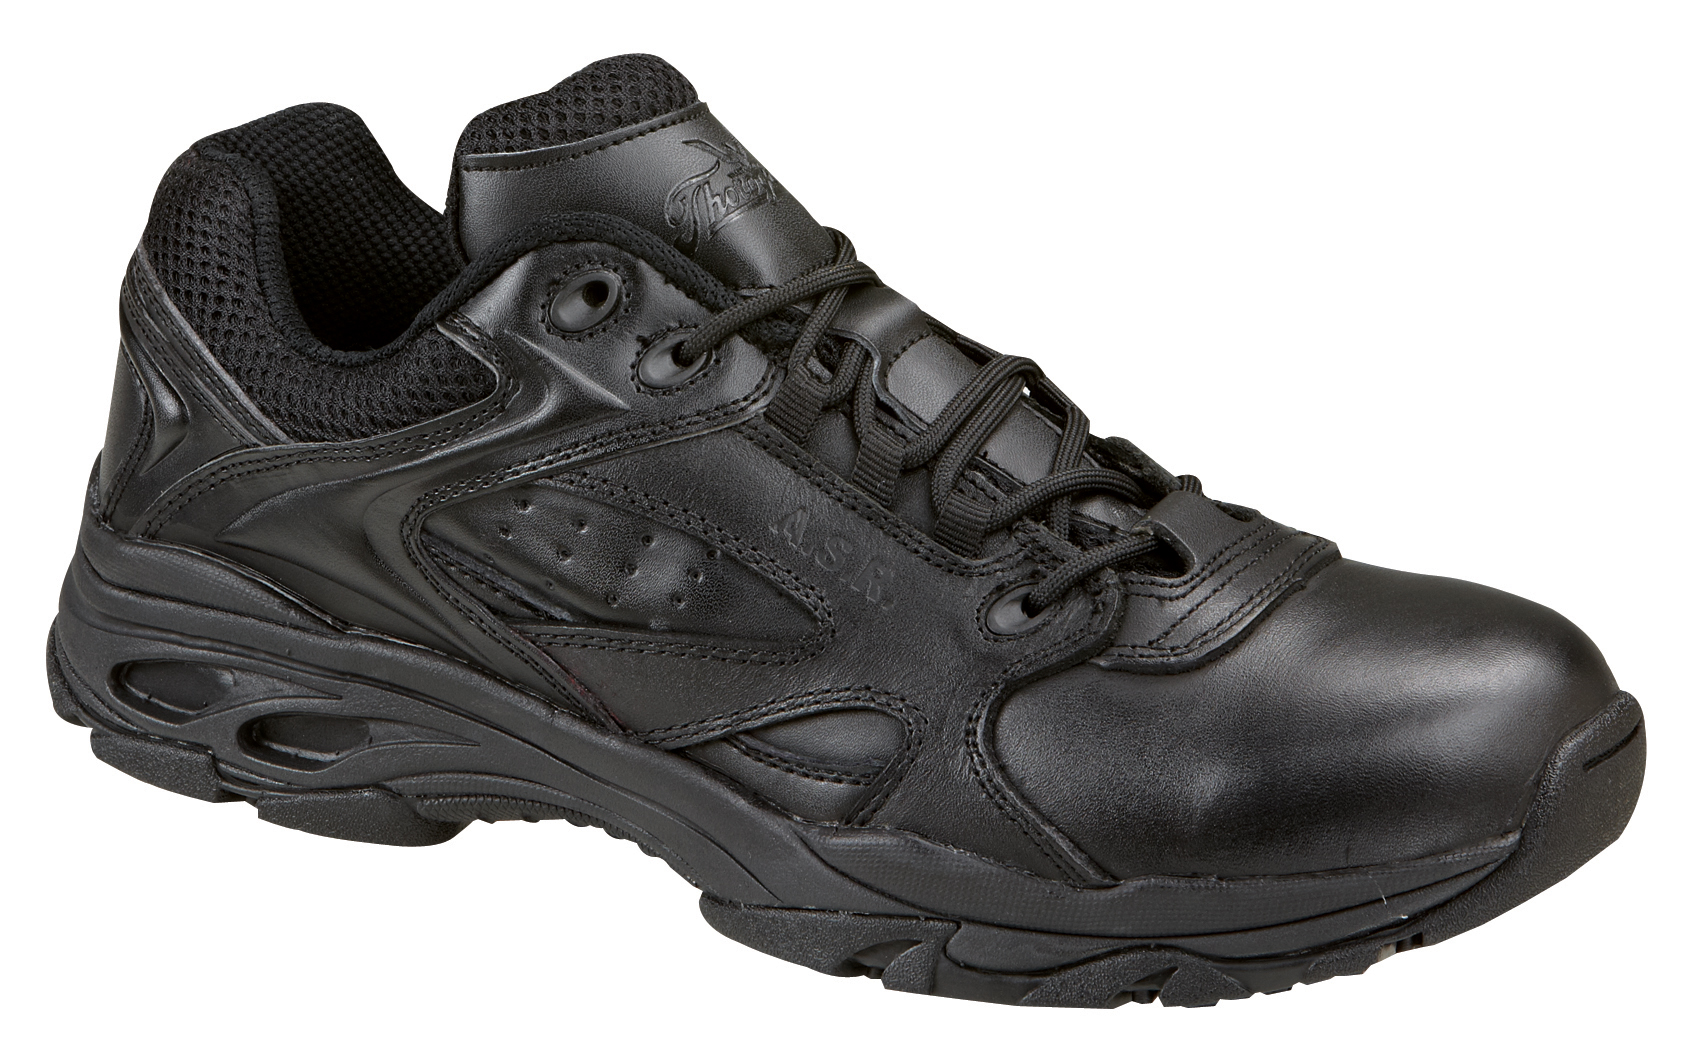 Comfortable, good looking, and safe, these black leather athletic work shoes from New Balance are equipped with a Shoes For Crews slip-resistant outsole. Let these cushioned, water-resistant sneakers carry you through your day. Diabetic approved.